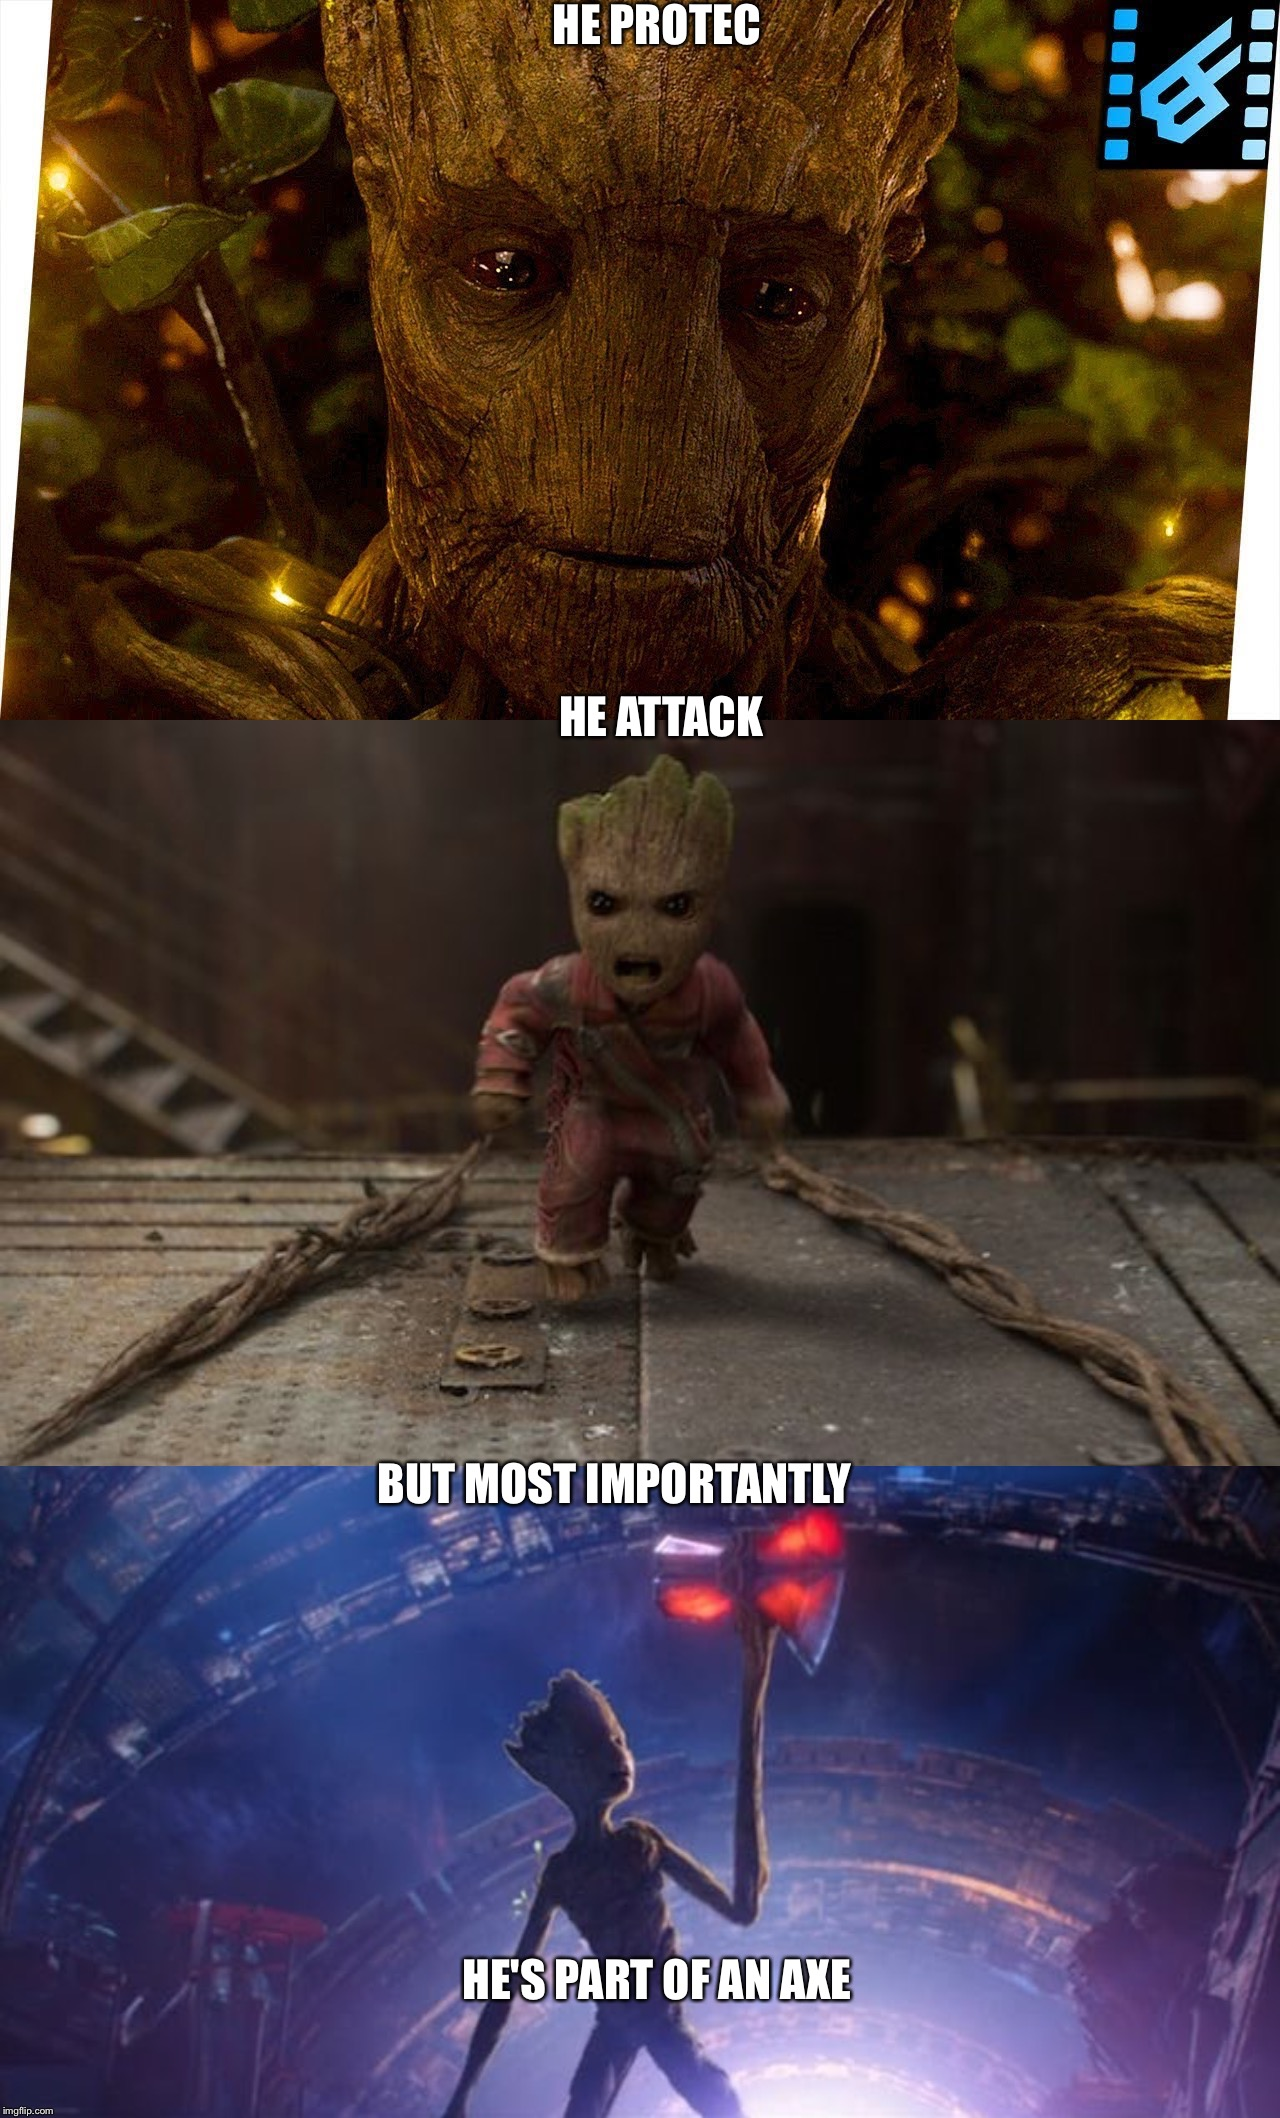 HE PROTEC HE ATTACK BUT MOST IMPORTANTLY HE'S PART OF AN AXE | image tagged in infinity war | made w/ Imgflip meme maker